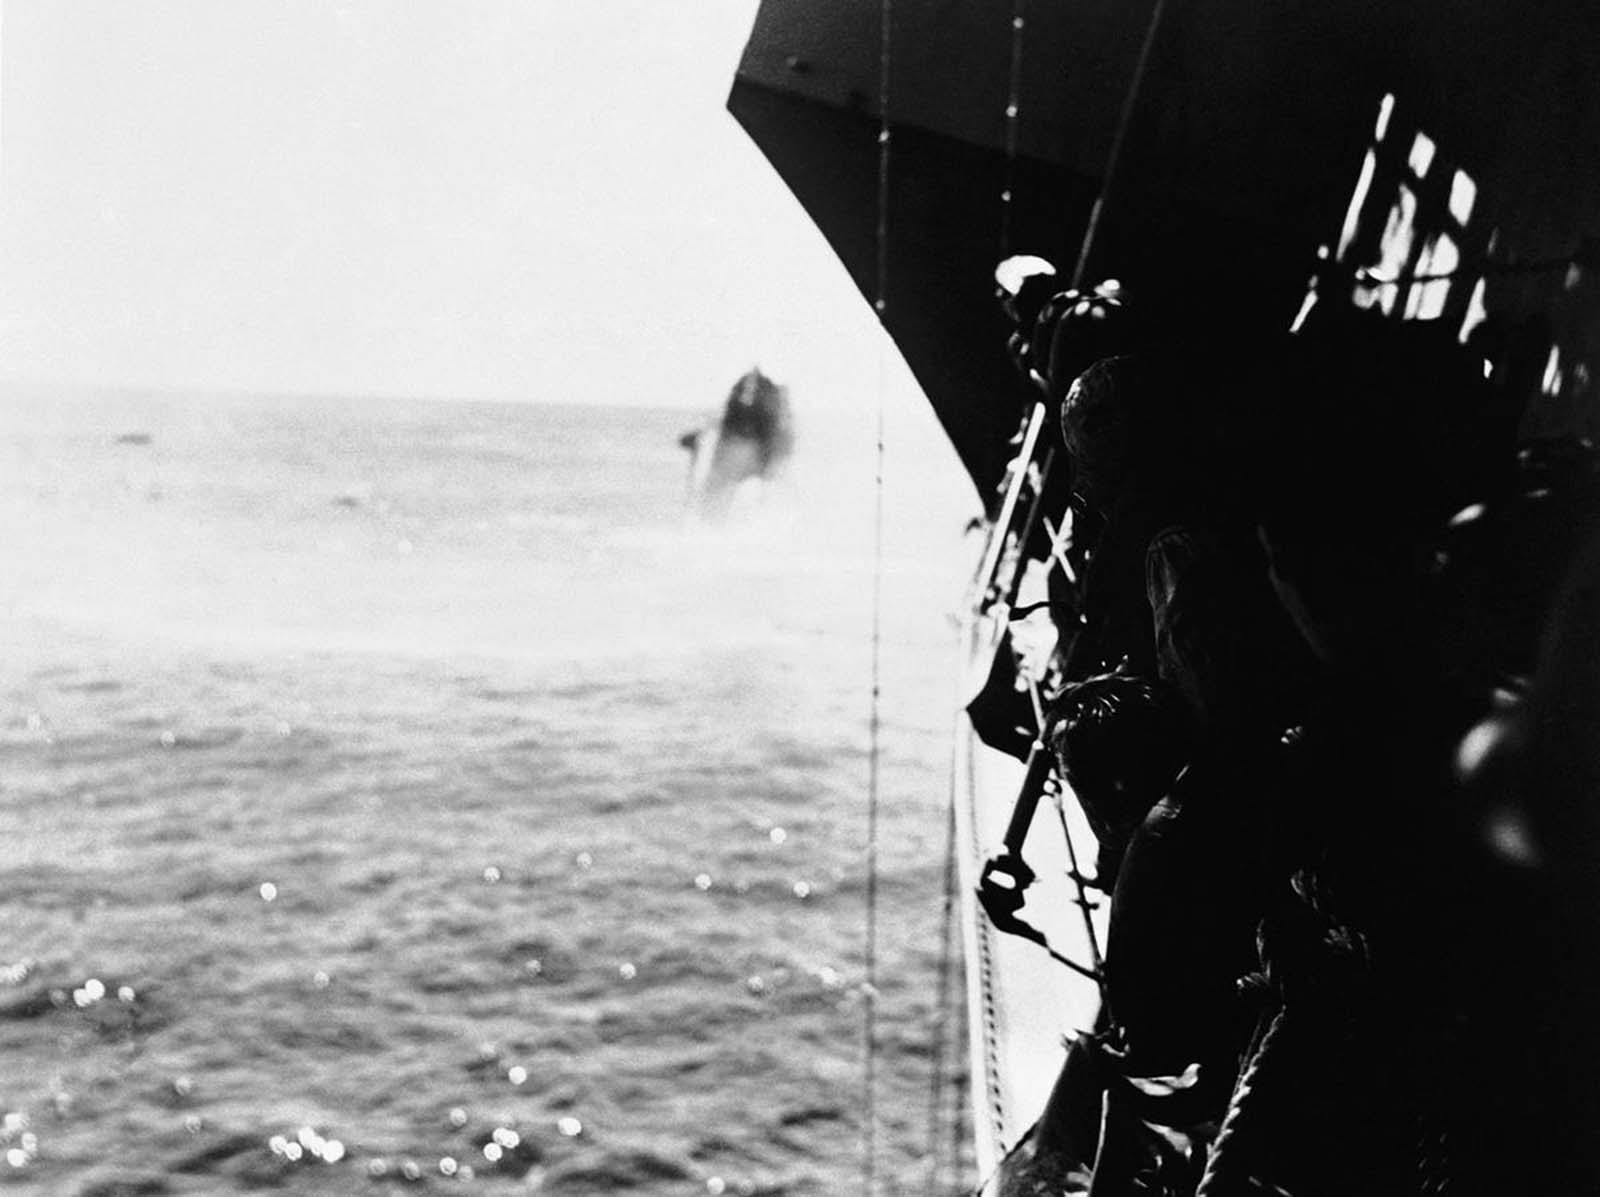 The United States destroyer Hammann, background, on its way to the bottom of the Pacific after having been hit by a Japanese torpedo during the battle of Midway, in June of 1942. The Hammann had been providing auxiliary power to damaged USS Yorktown while salvage operations were underway. The same attack also struck the Yorktown, which sank the following morning. Crewmen of another U.S. warship, foreground, line the rail as their vessel stands by to rescue survivors.